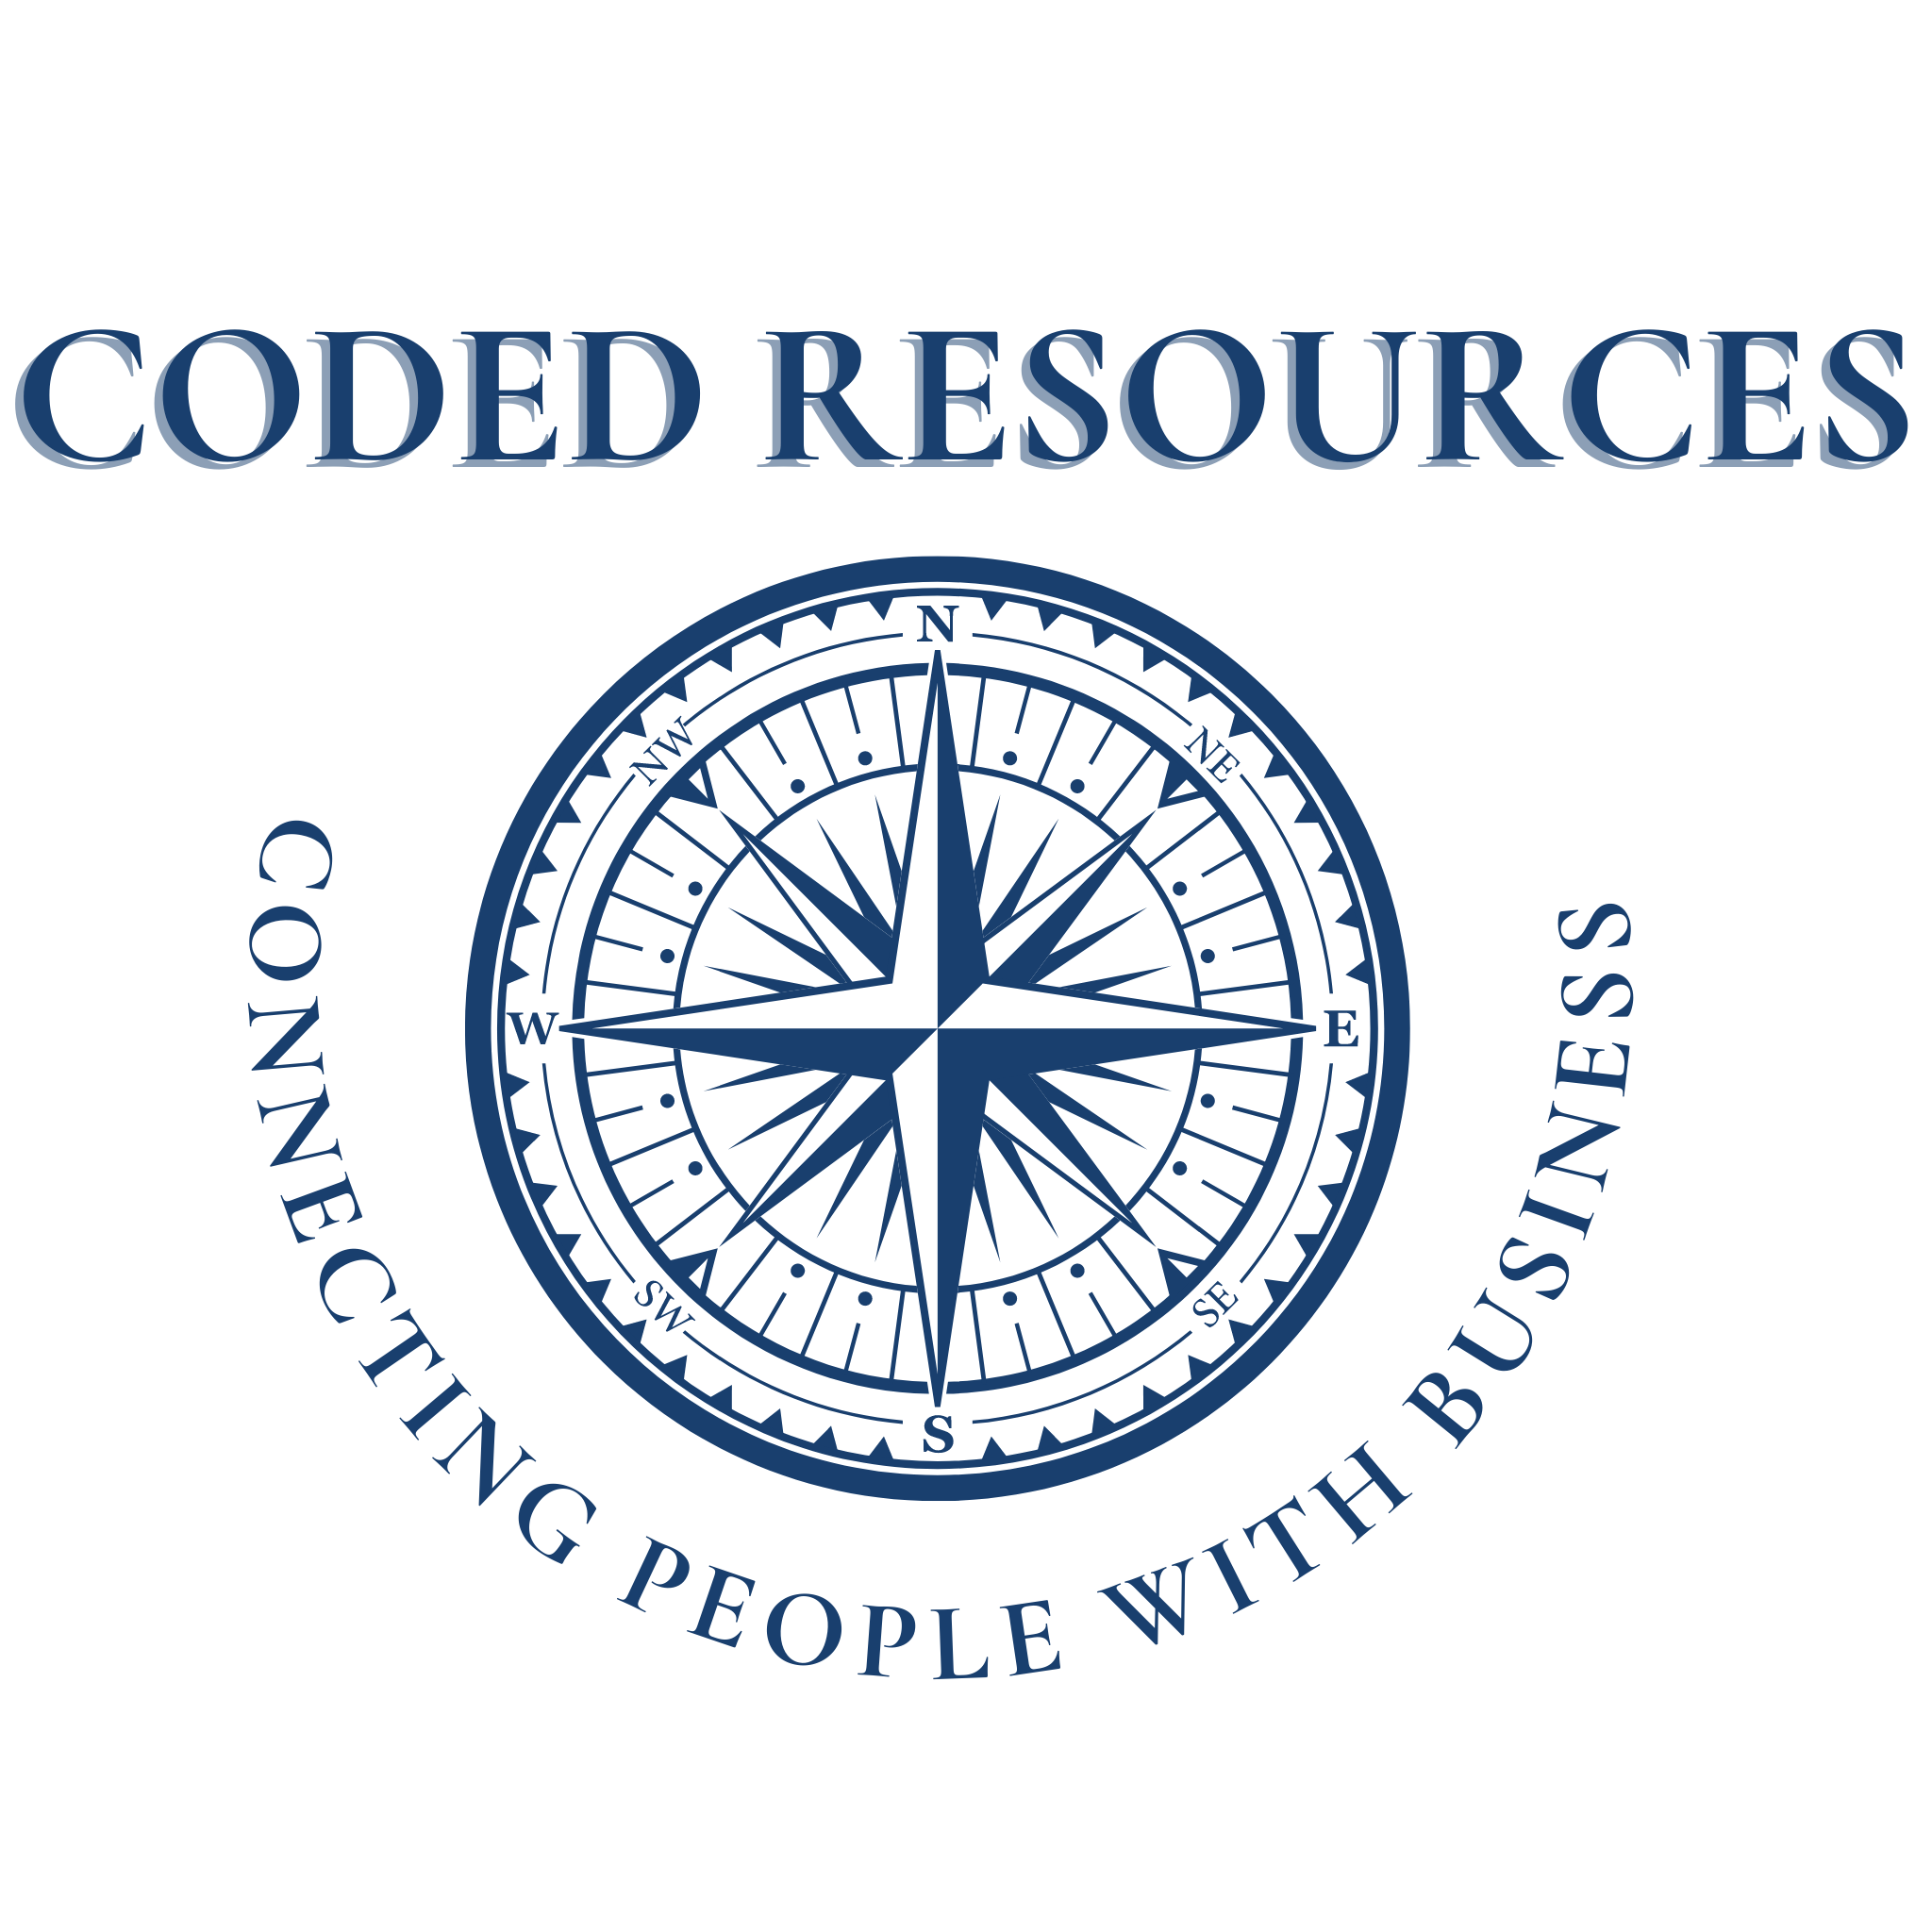 Coded Resources